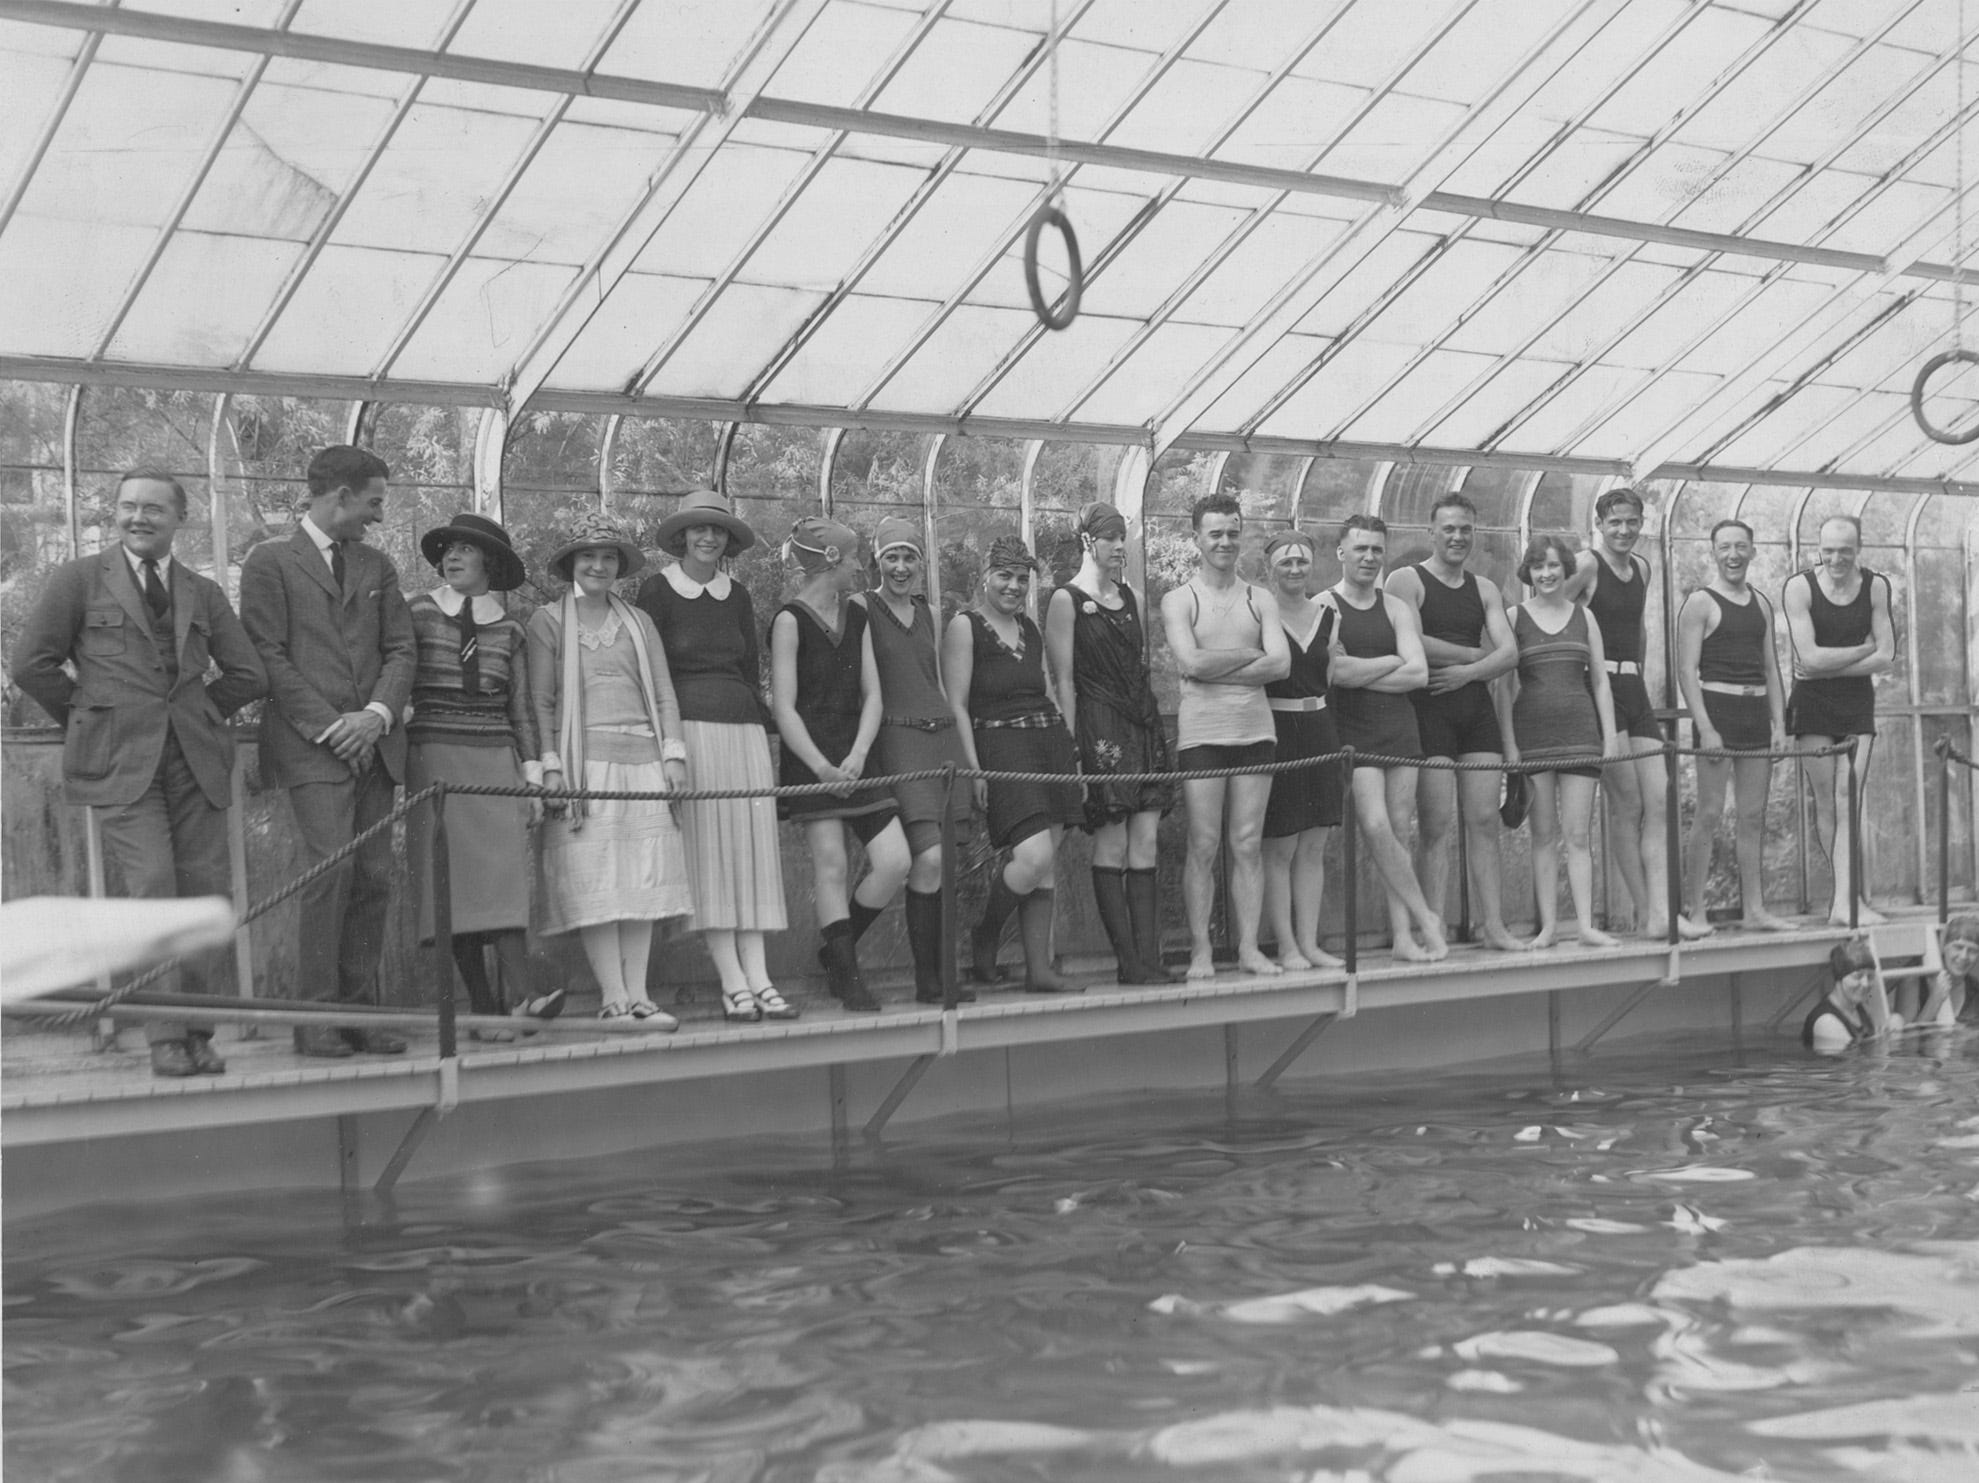 Party-goers at the home of Carl and Jane Fisher line the deck of the FishersÕ glassed-in swimming pool in the summer of 1922. Jane Fisher spent afternoons between the hours of 3 and 6 oÕclock at home in her pool, Òa rendezvous for friends,Ó according to a news feature on popular swimming spots in Indianapolis. The snow-white basin filled with clear, cool water Òfairly magnetizes onlookers into diving in,Ó said the story.